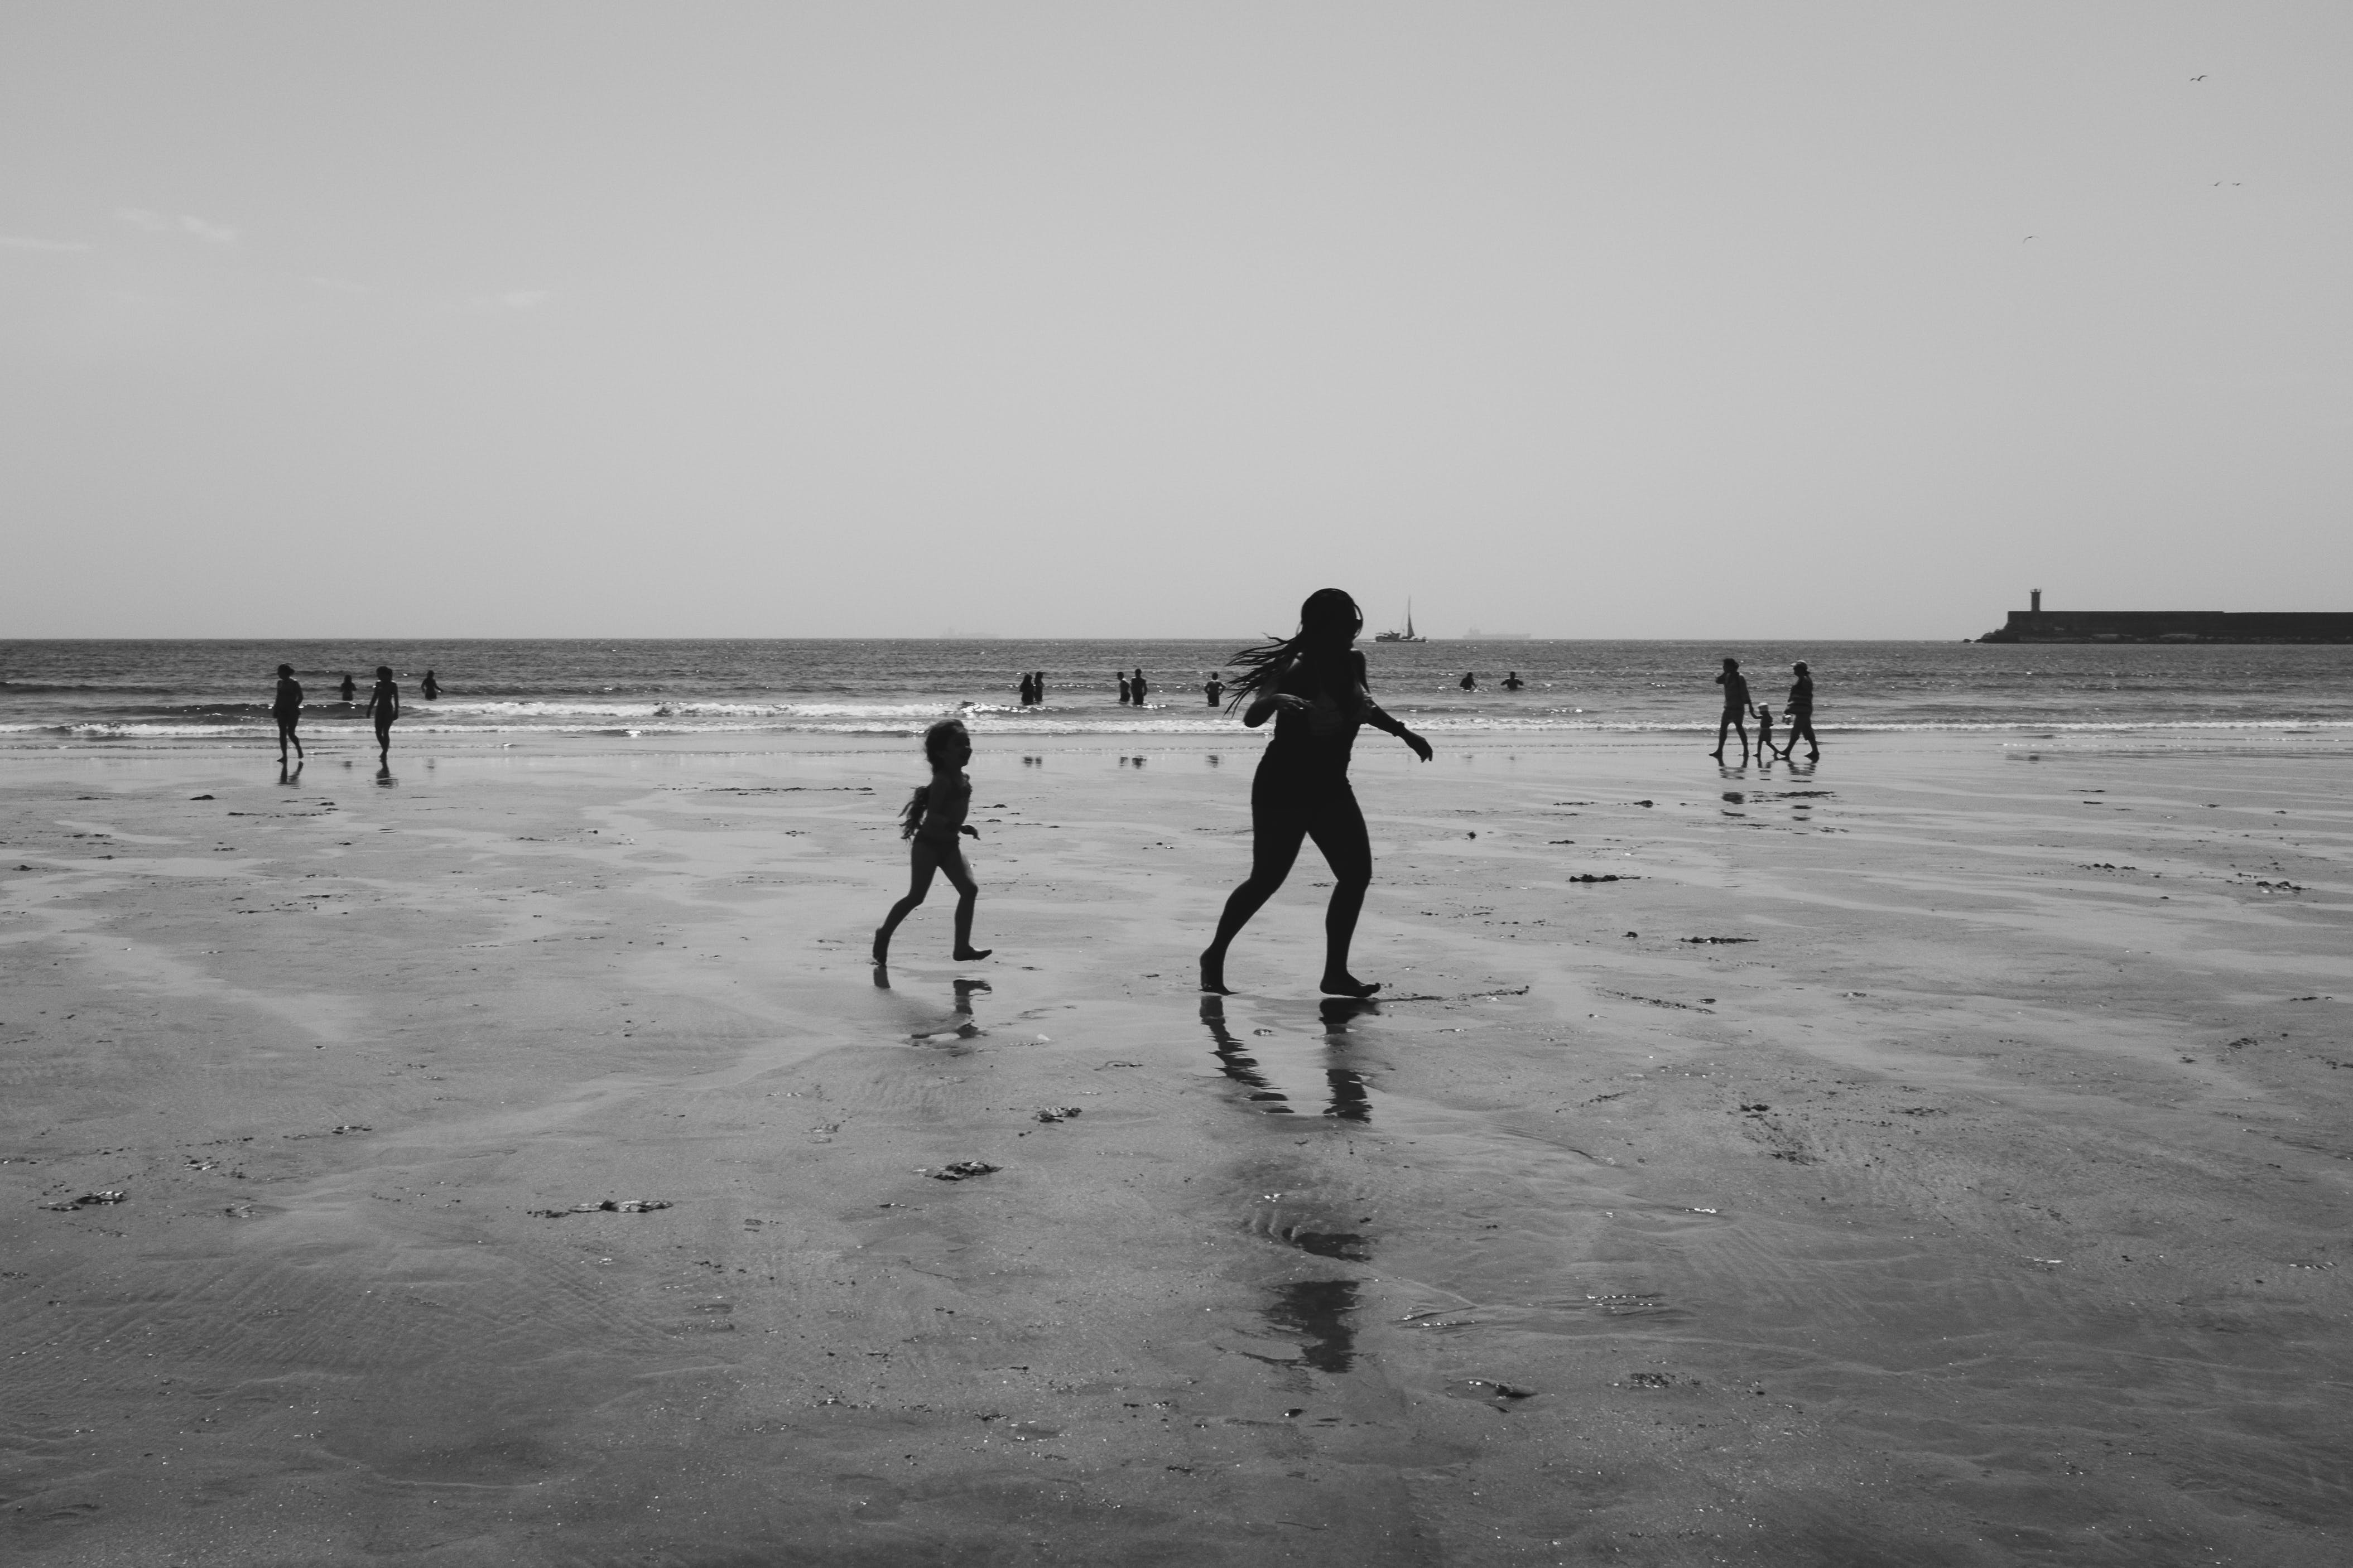 Grayscale Photography Of People At The Beach